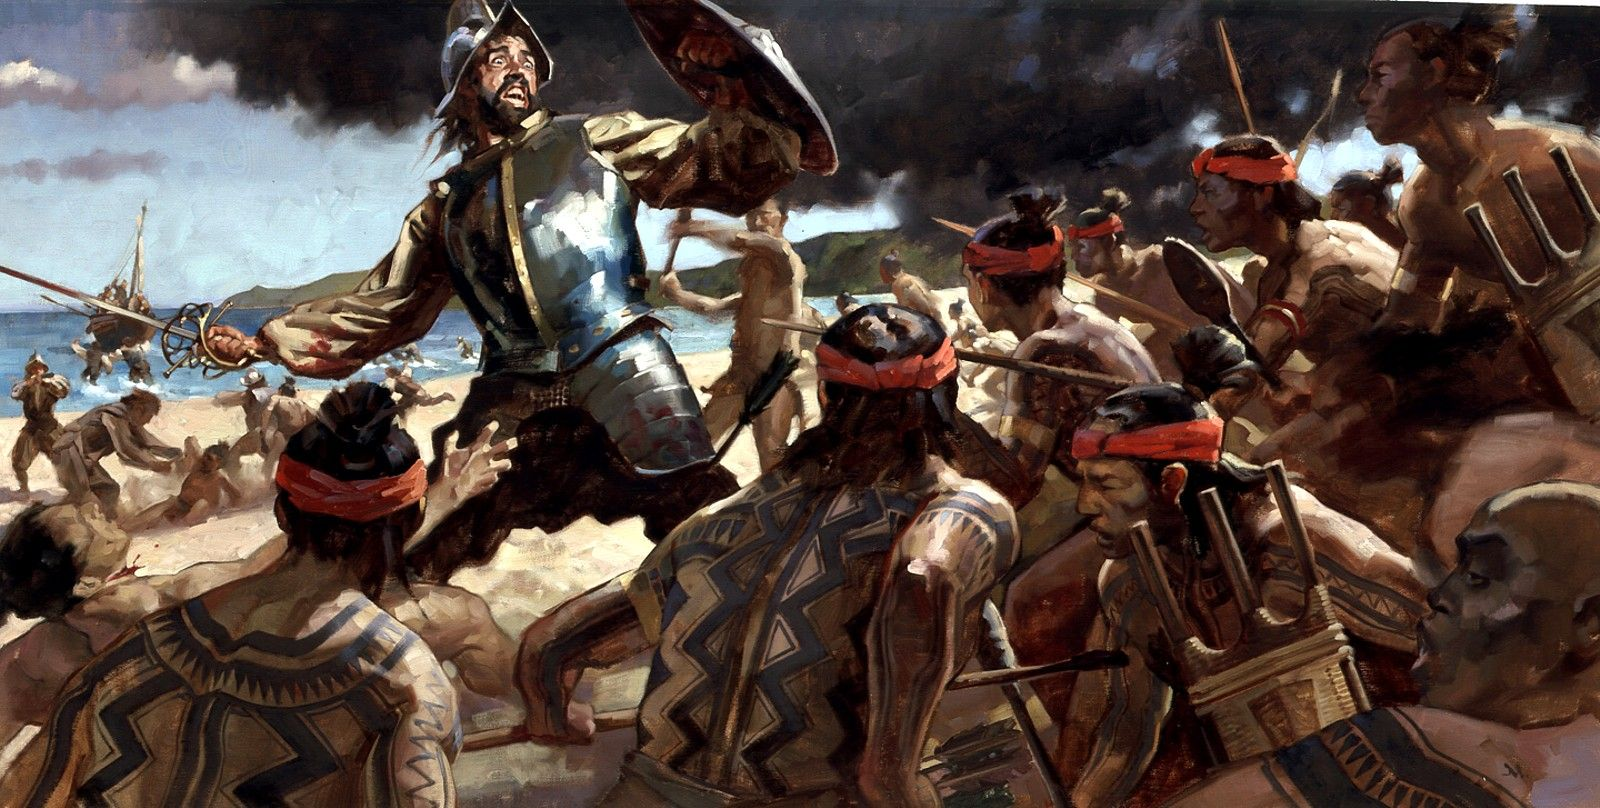 1521, Magellan's death in battle against the natives of the island of Mactan, Philippines - Greg Manchess